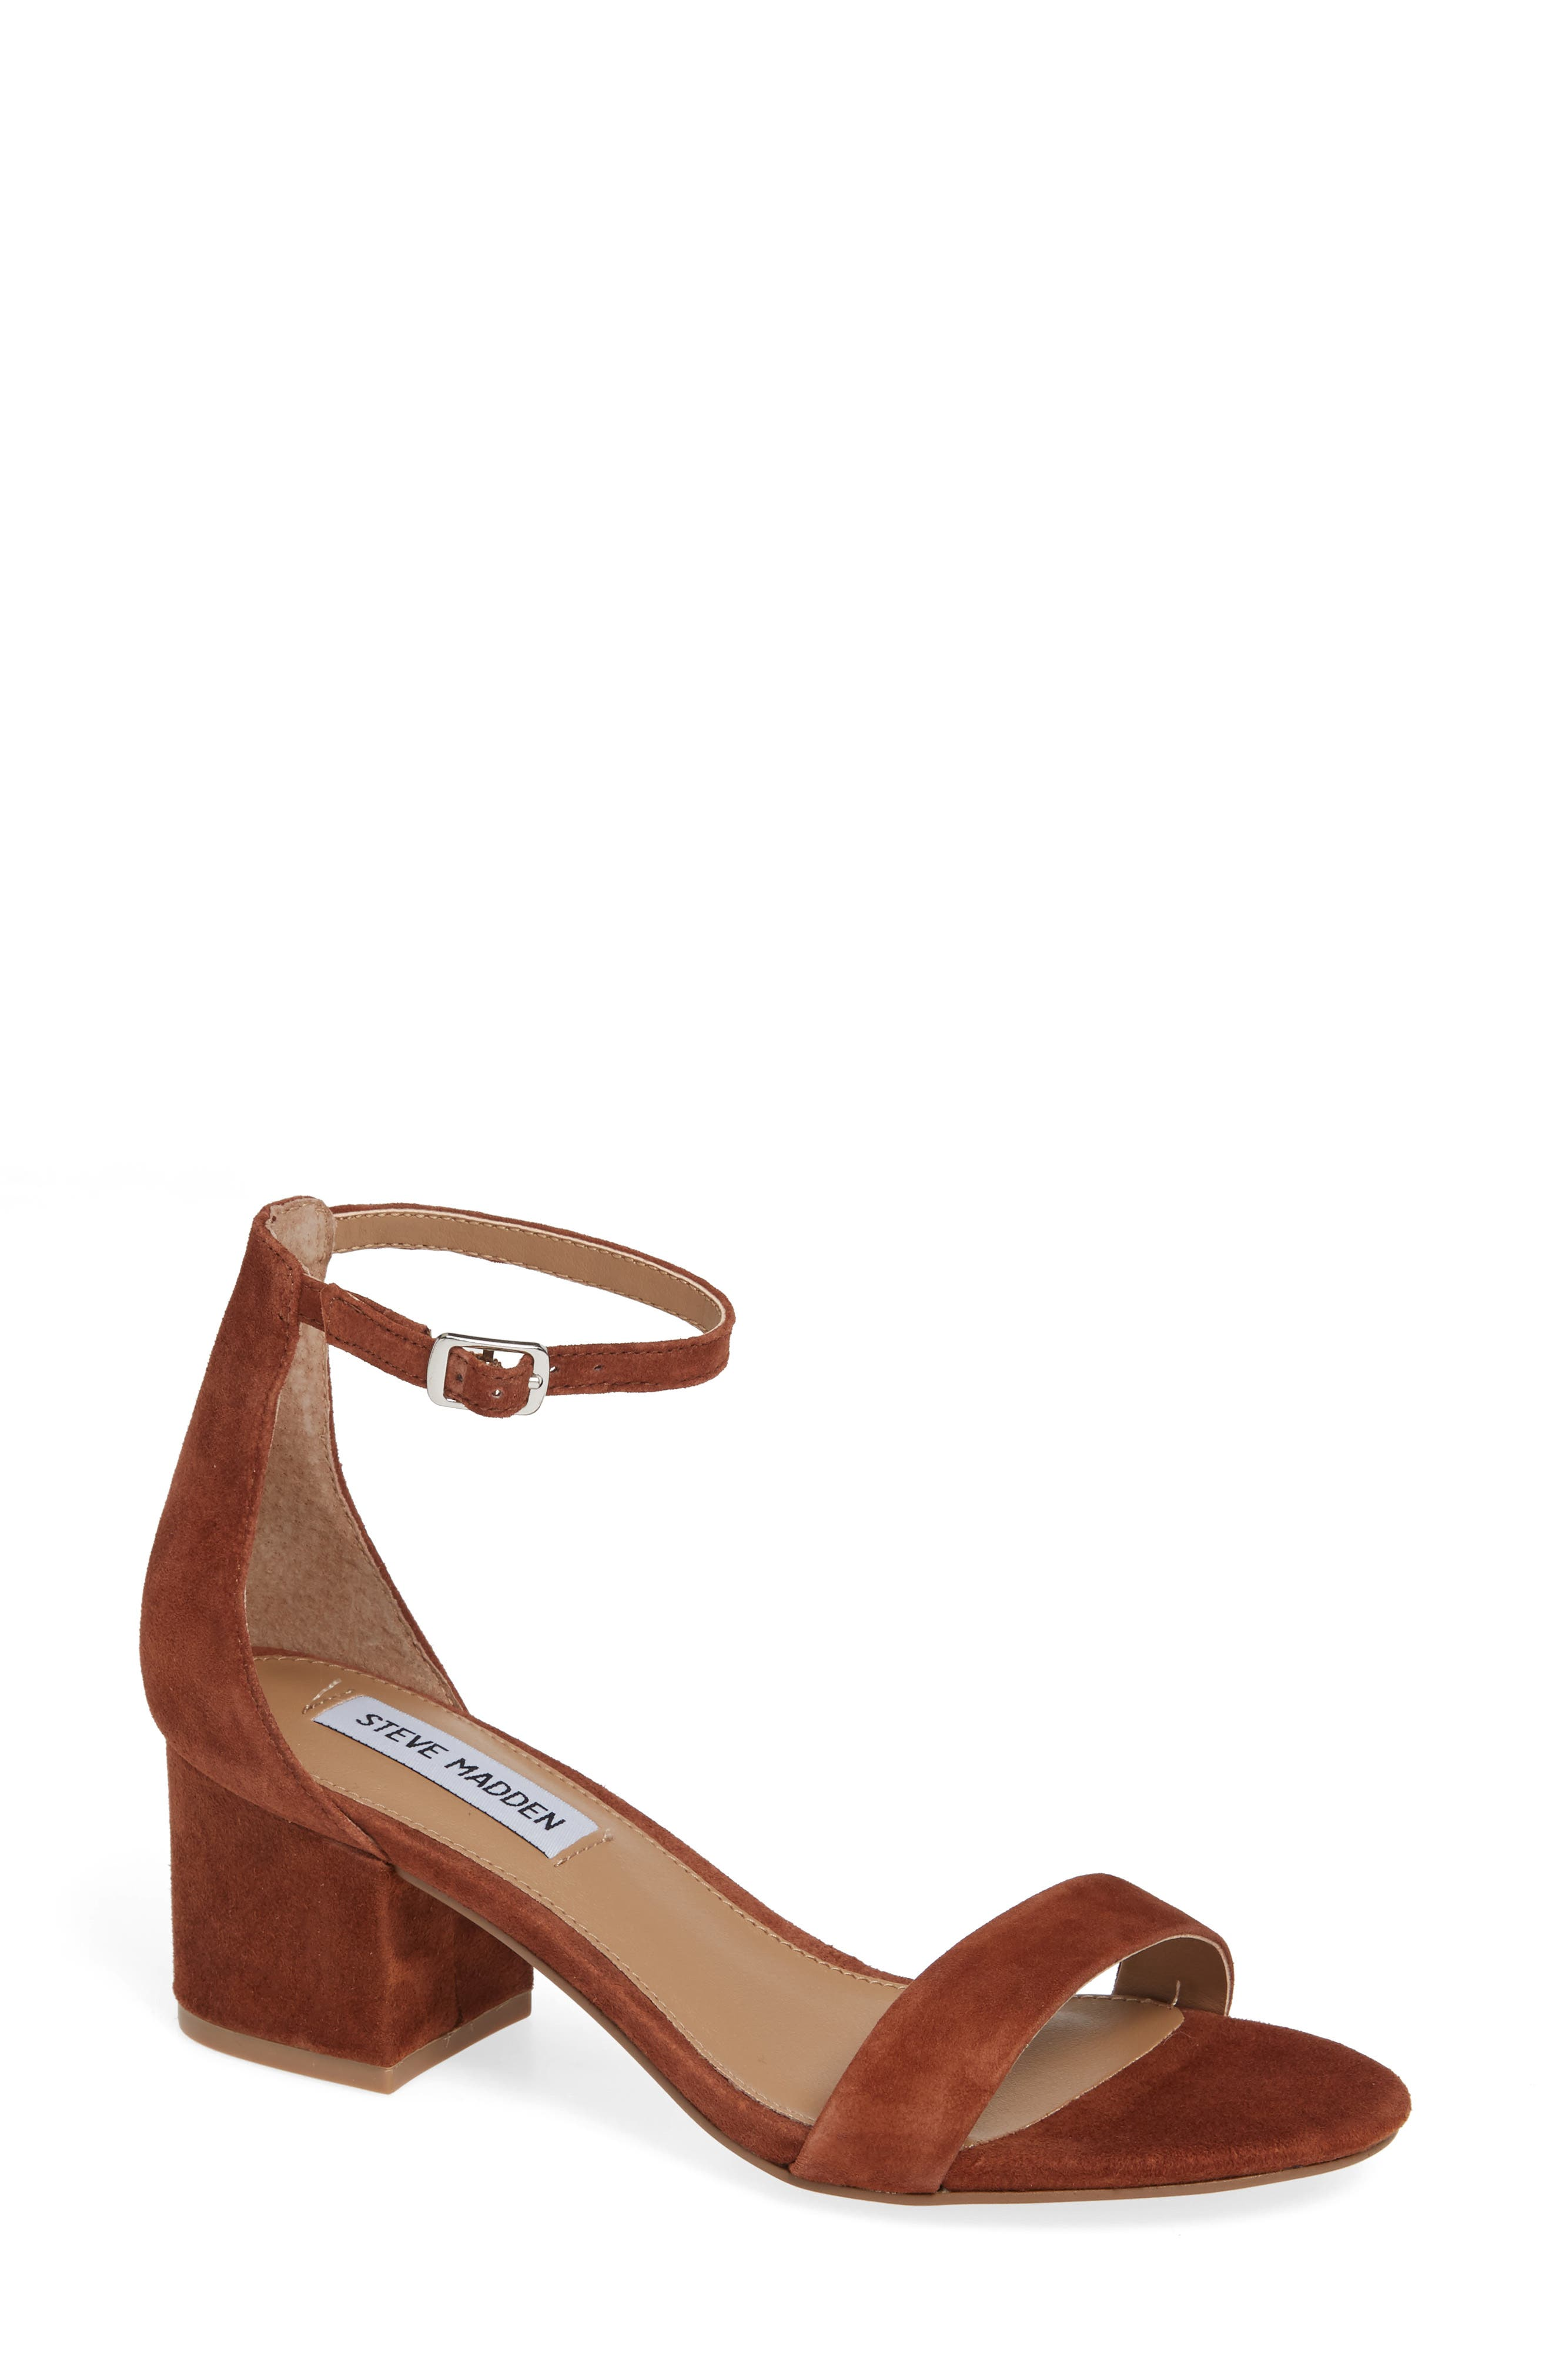 ,                             Irenee Ankle Strap Sandal,                             Main thumbnail 36, color,                             201